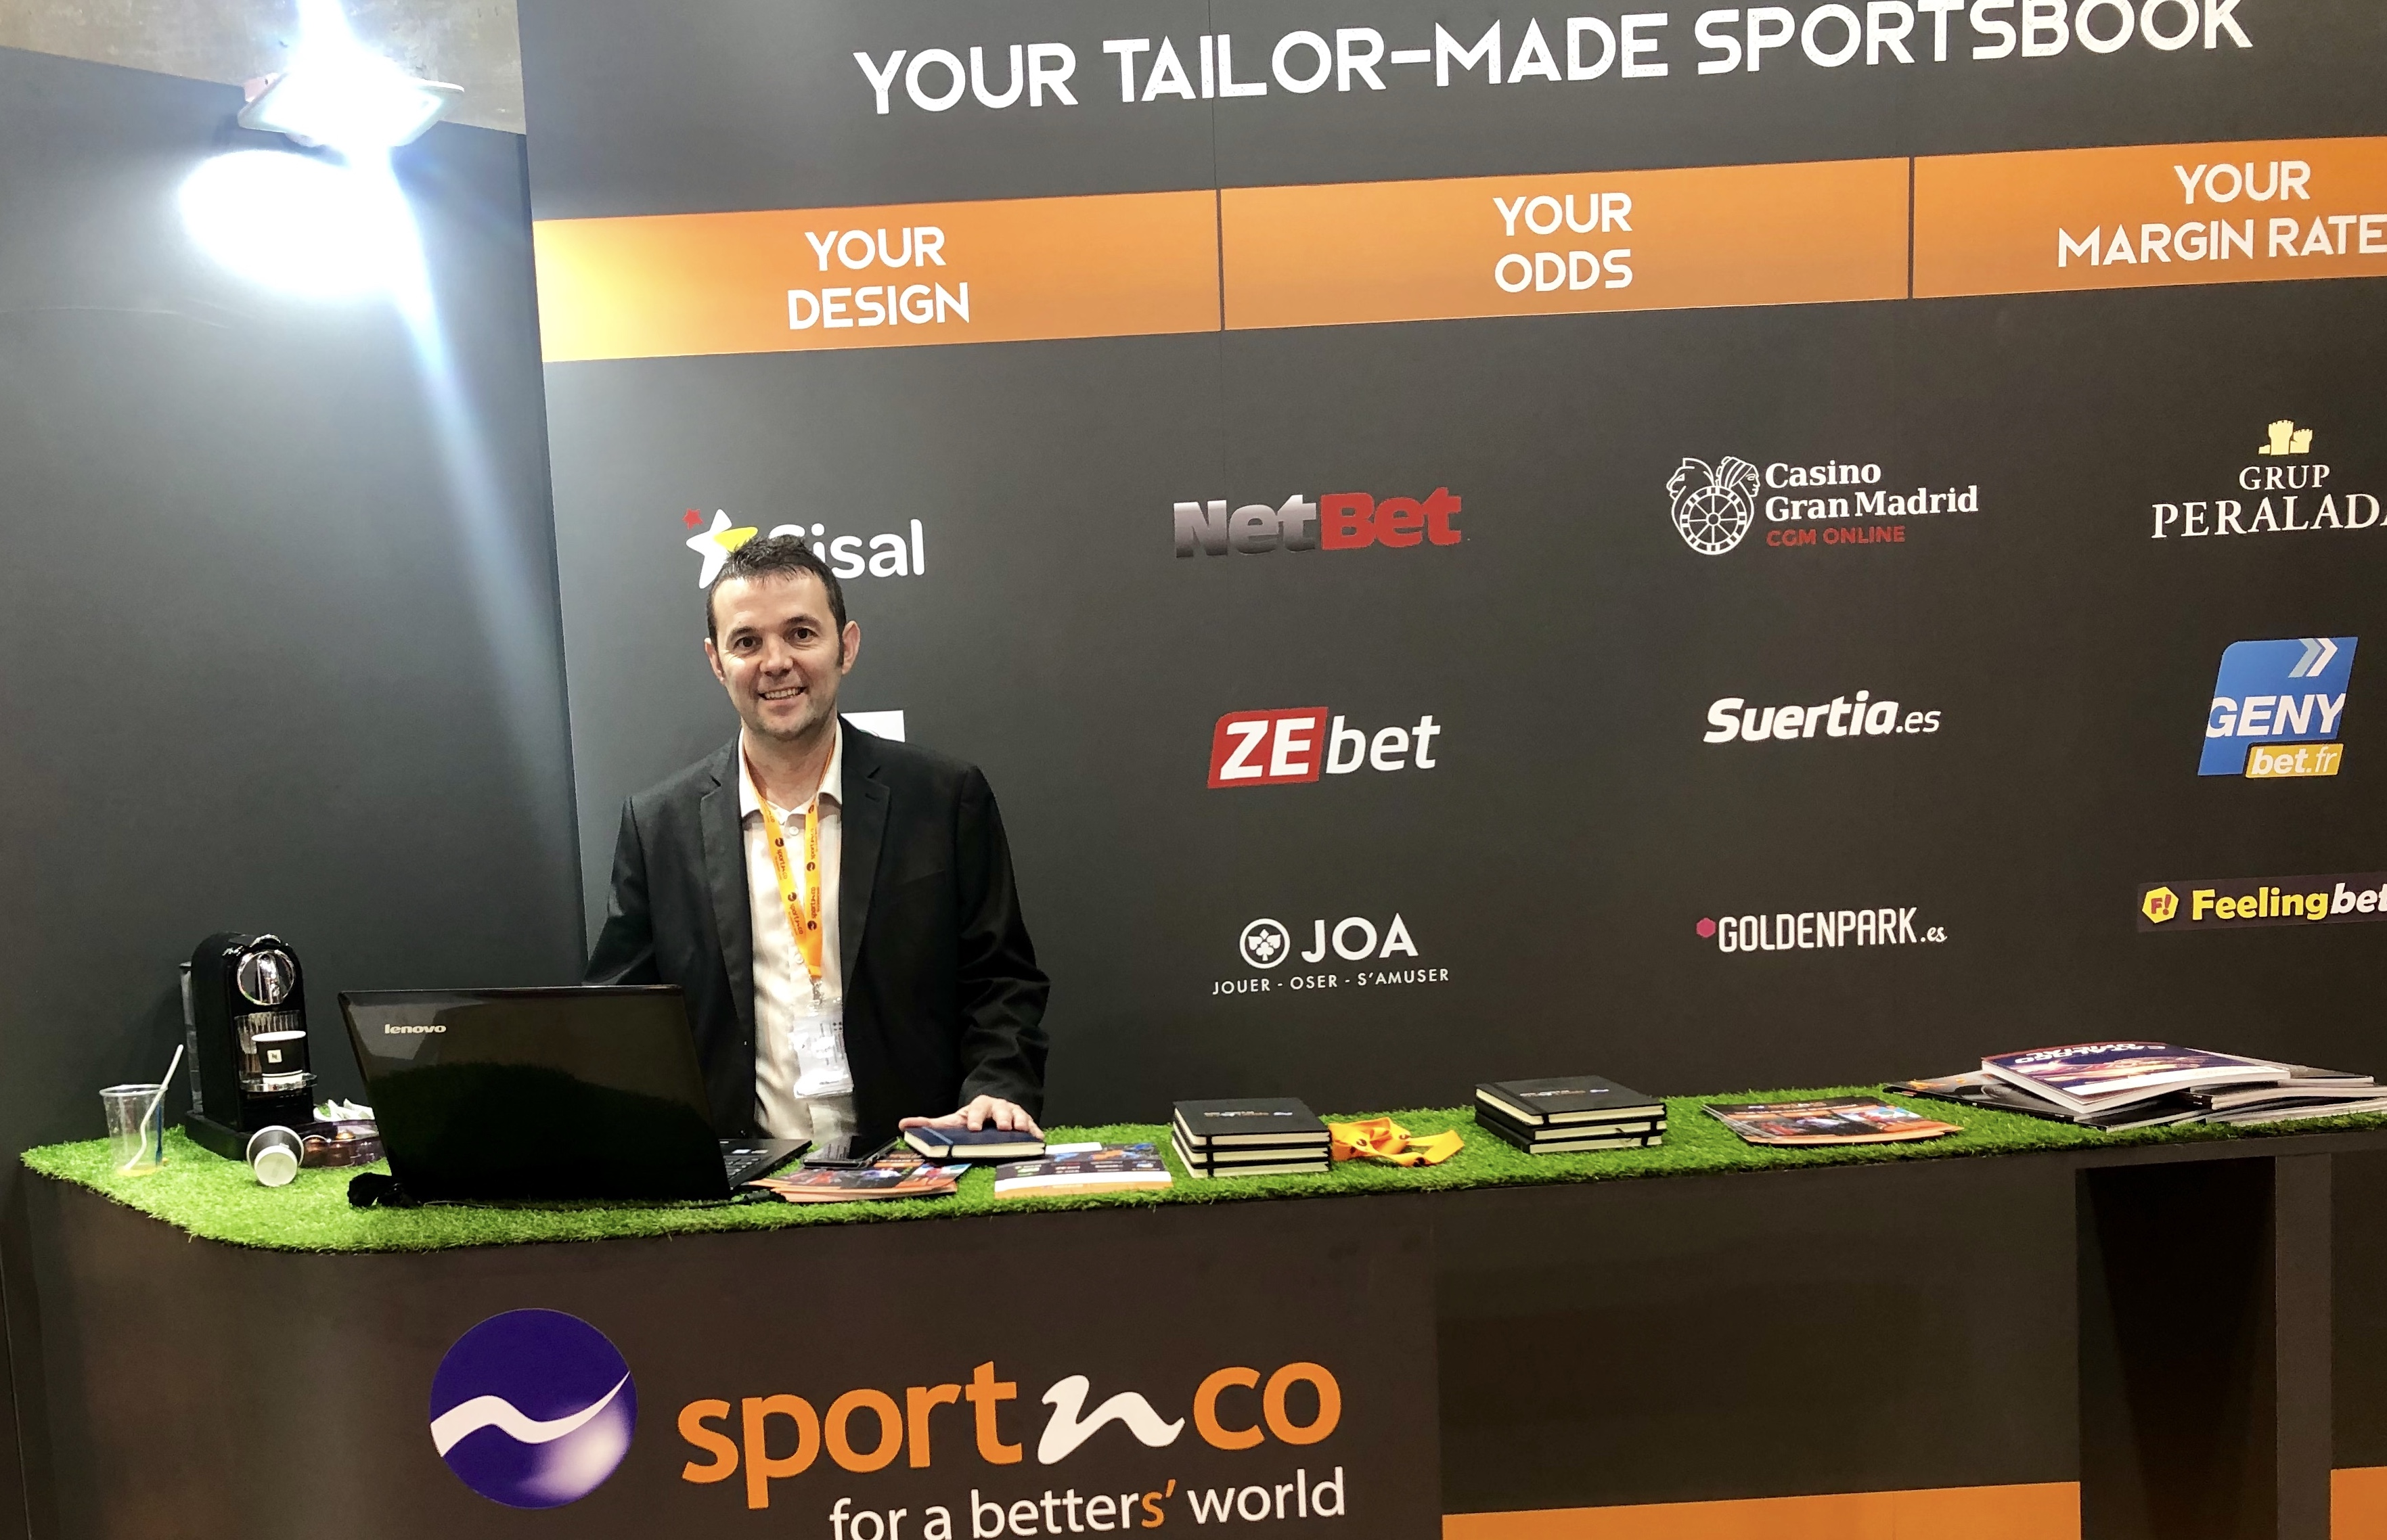 Sportnco to continue Spanish growth push at FIJMA Madrid from 9-11 April